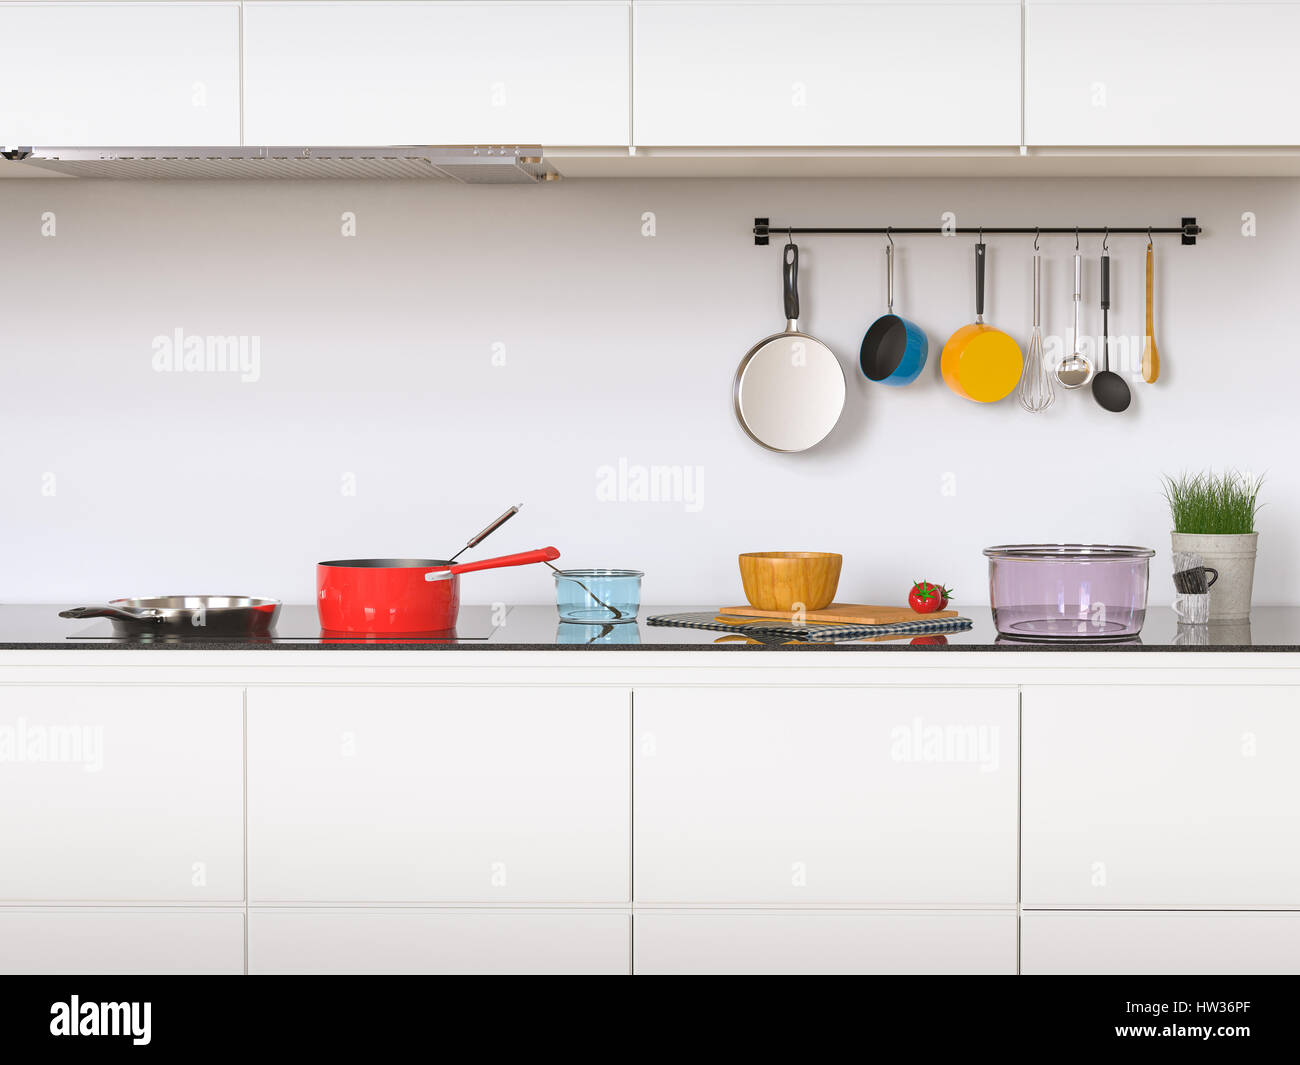 stock photo 3d rendering kitchen cabinets with kitchen utensils stock kitchen cabinets 3d rendering kitchen cabinets with kitchen utensils